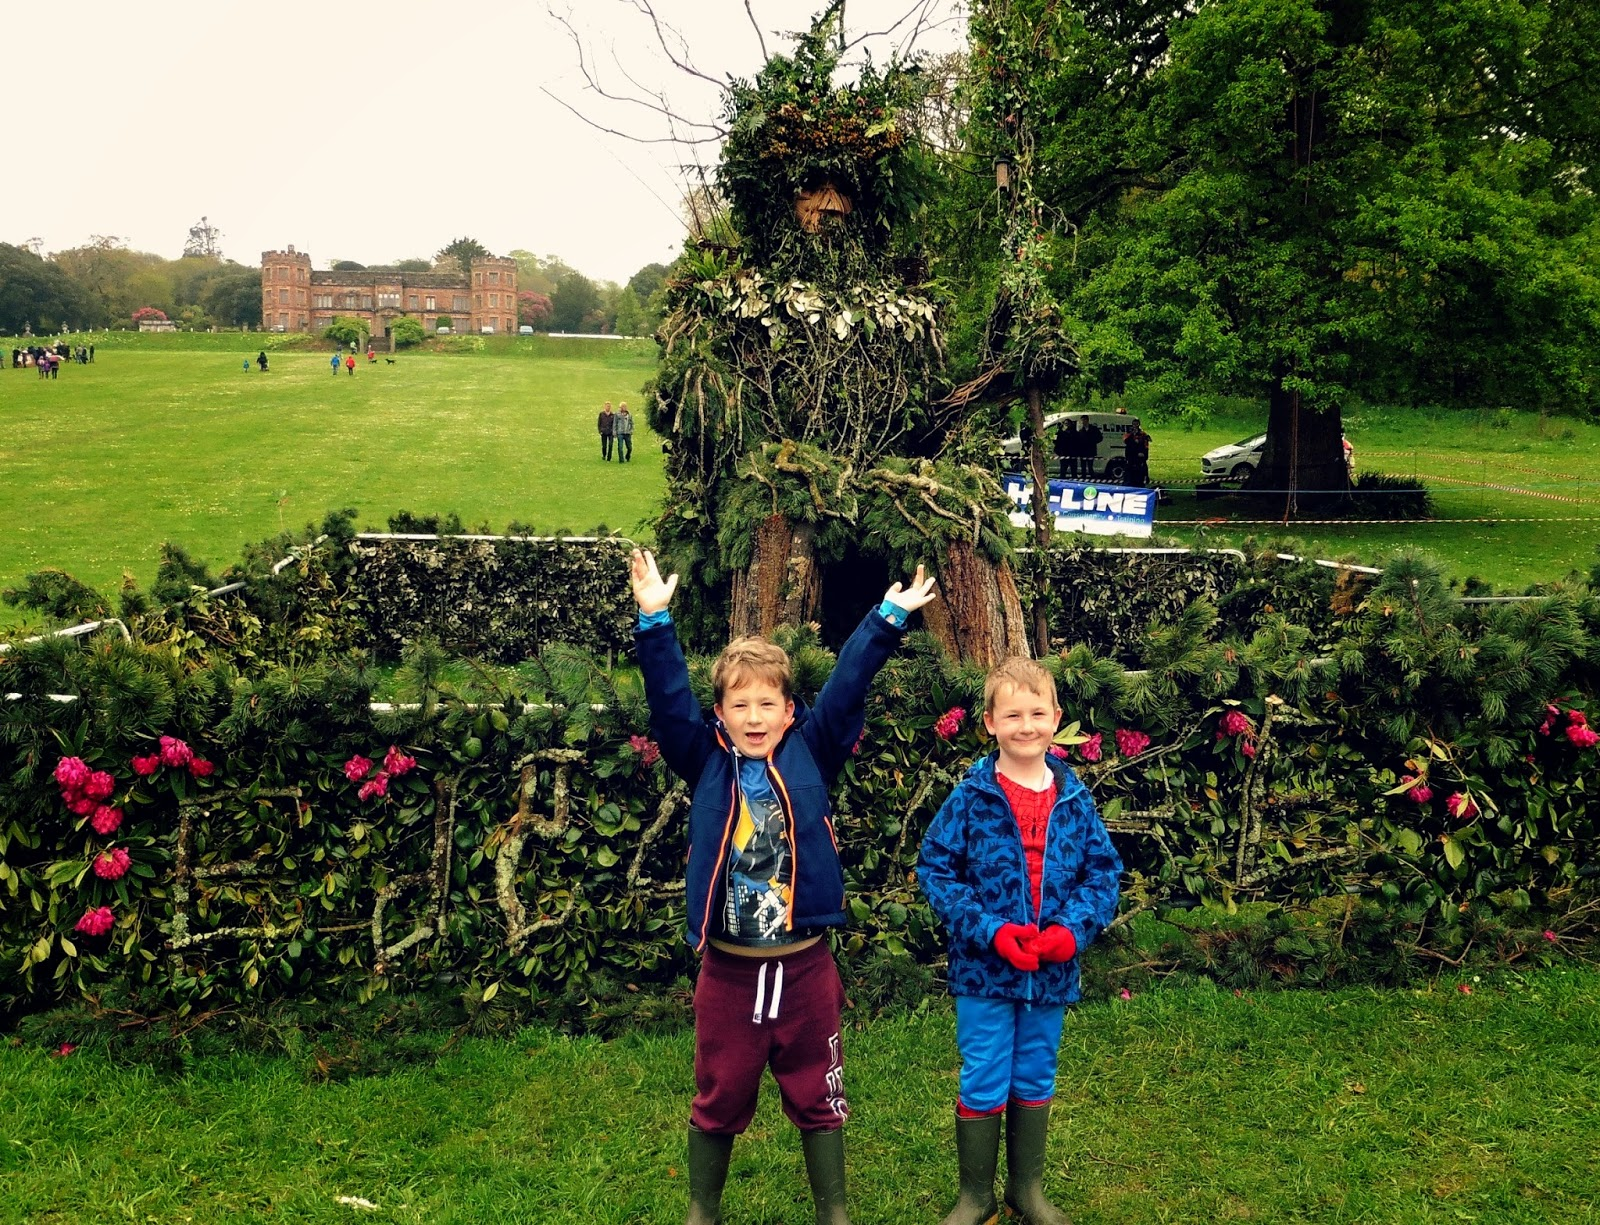 cornwall, spring, festival, rebirth, green man, mount edgcumbe, fun, plymouth, garden, trees, structure, statue,